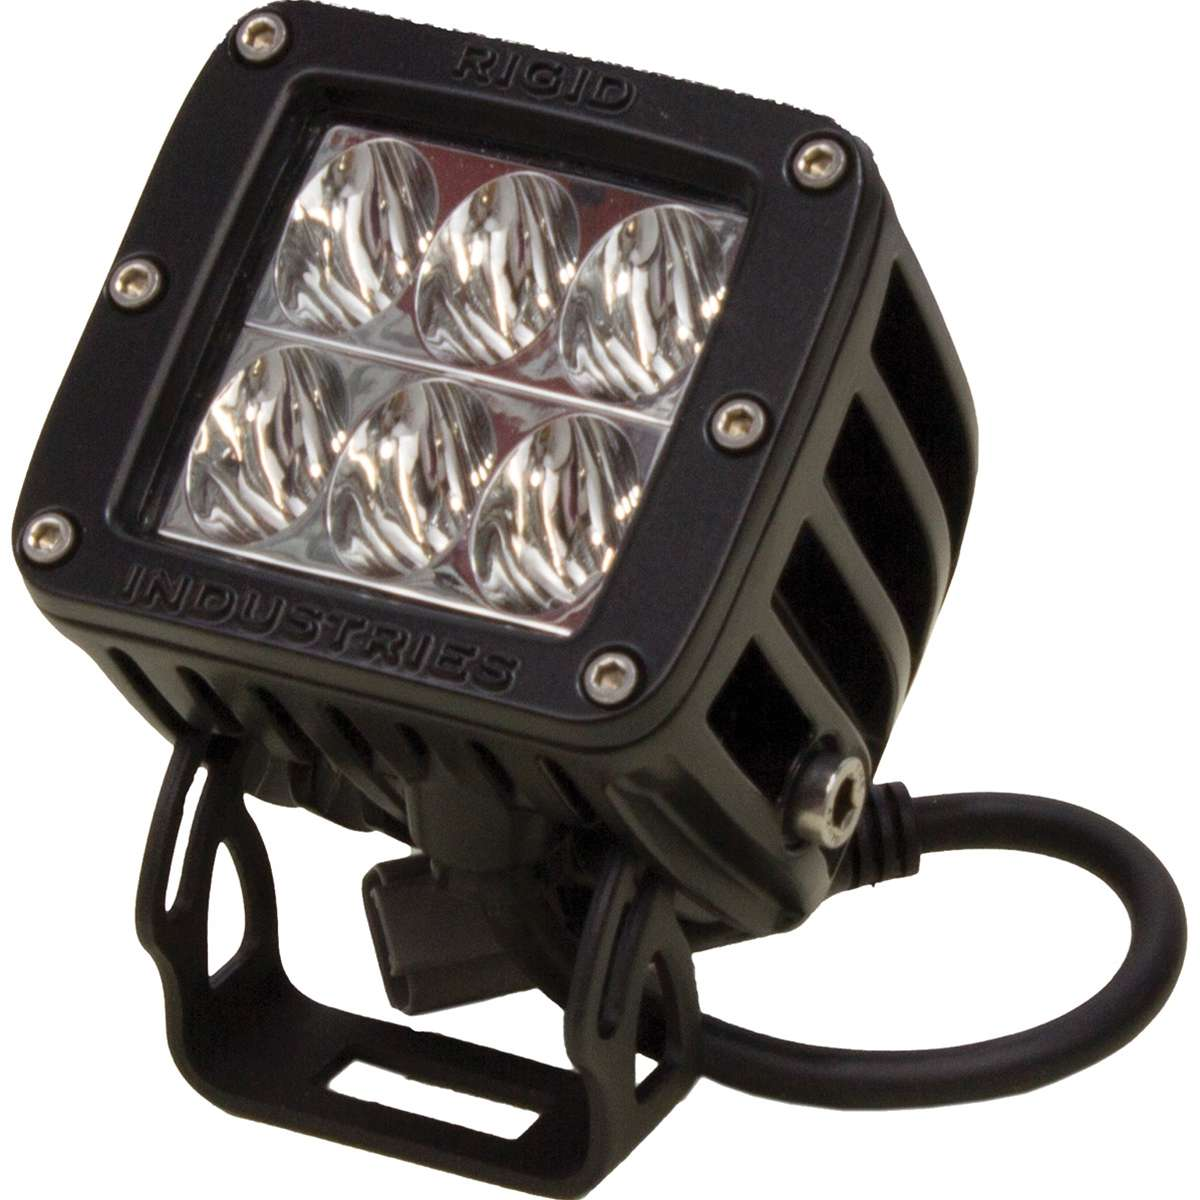 KM D2-Series LED Driving Light